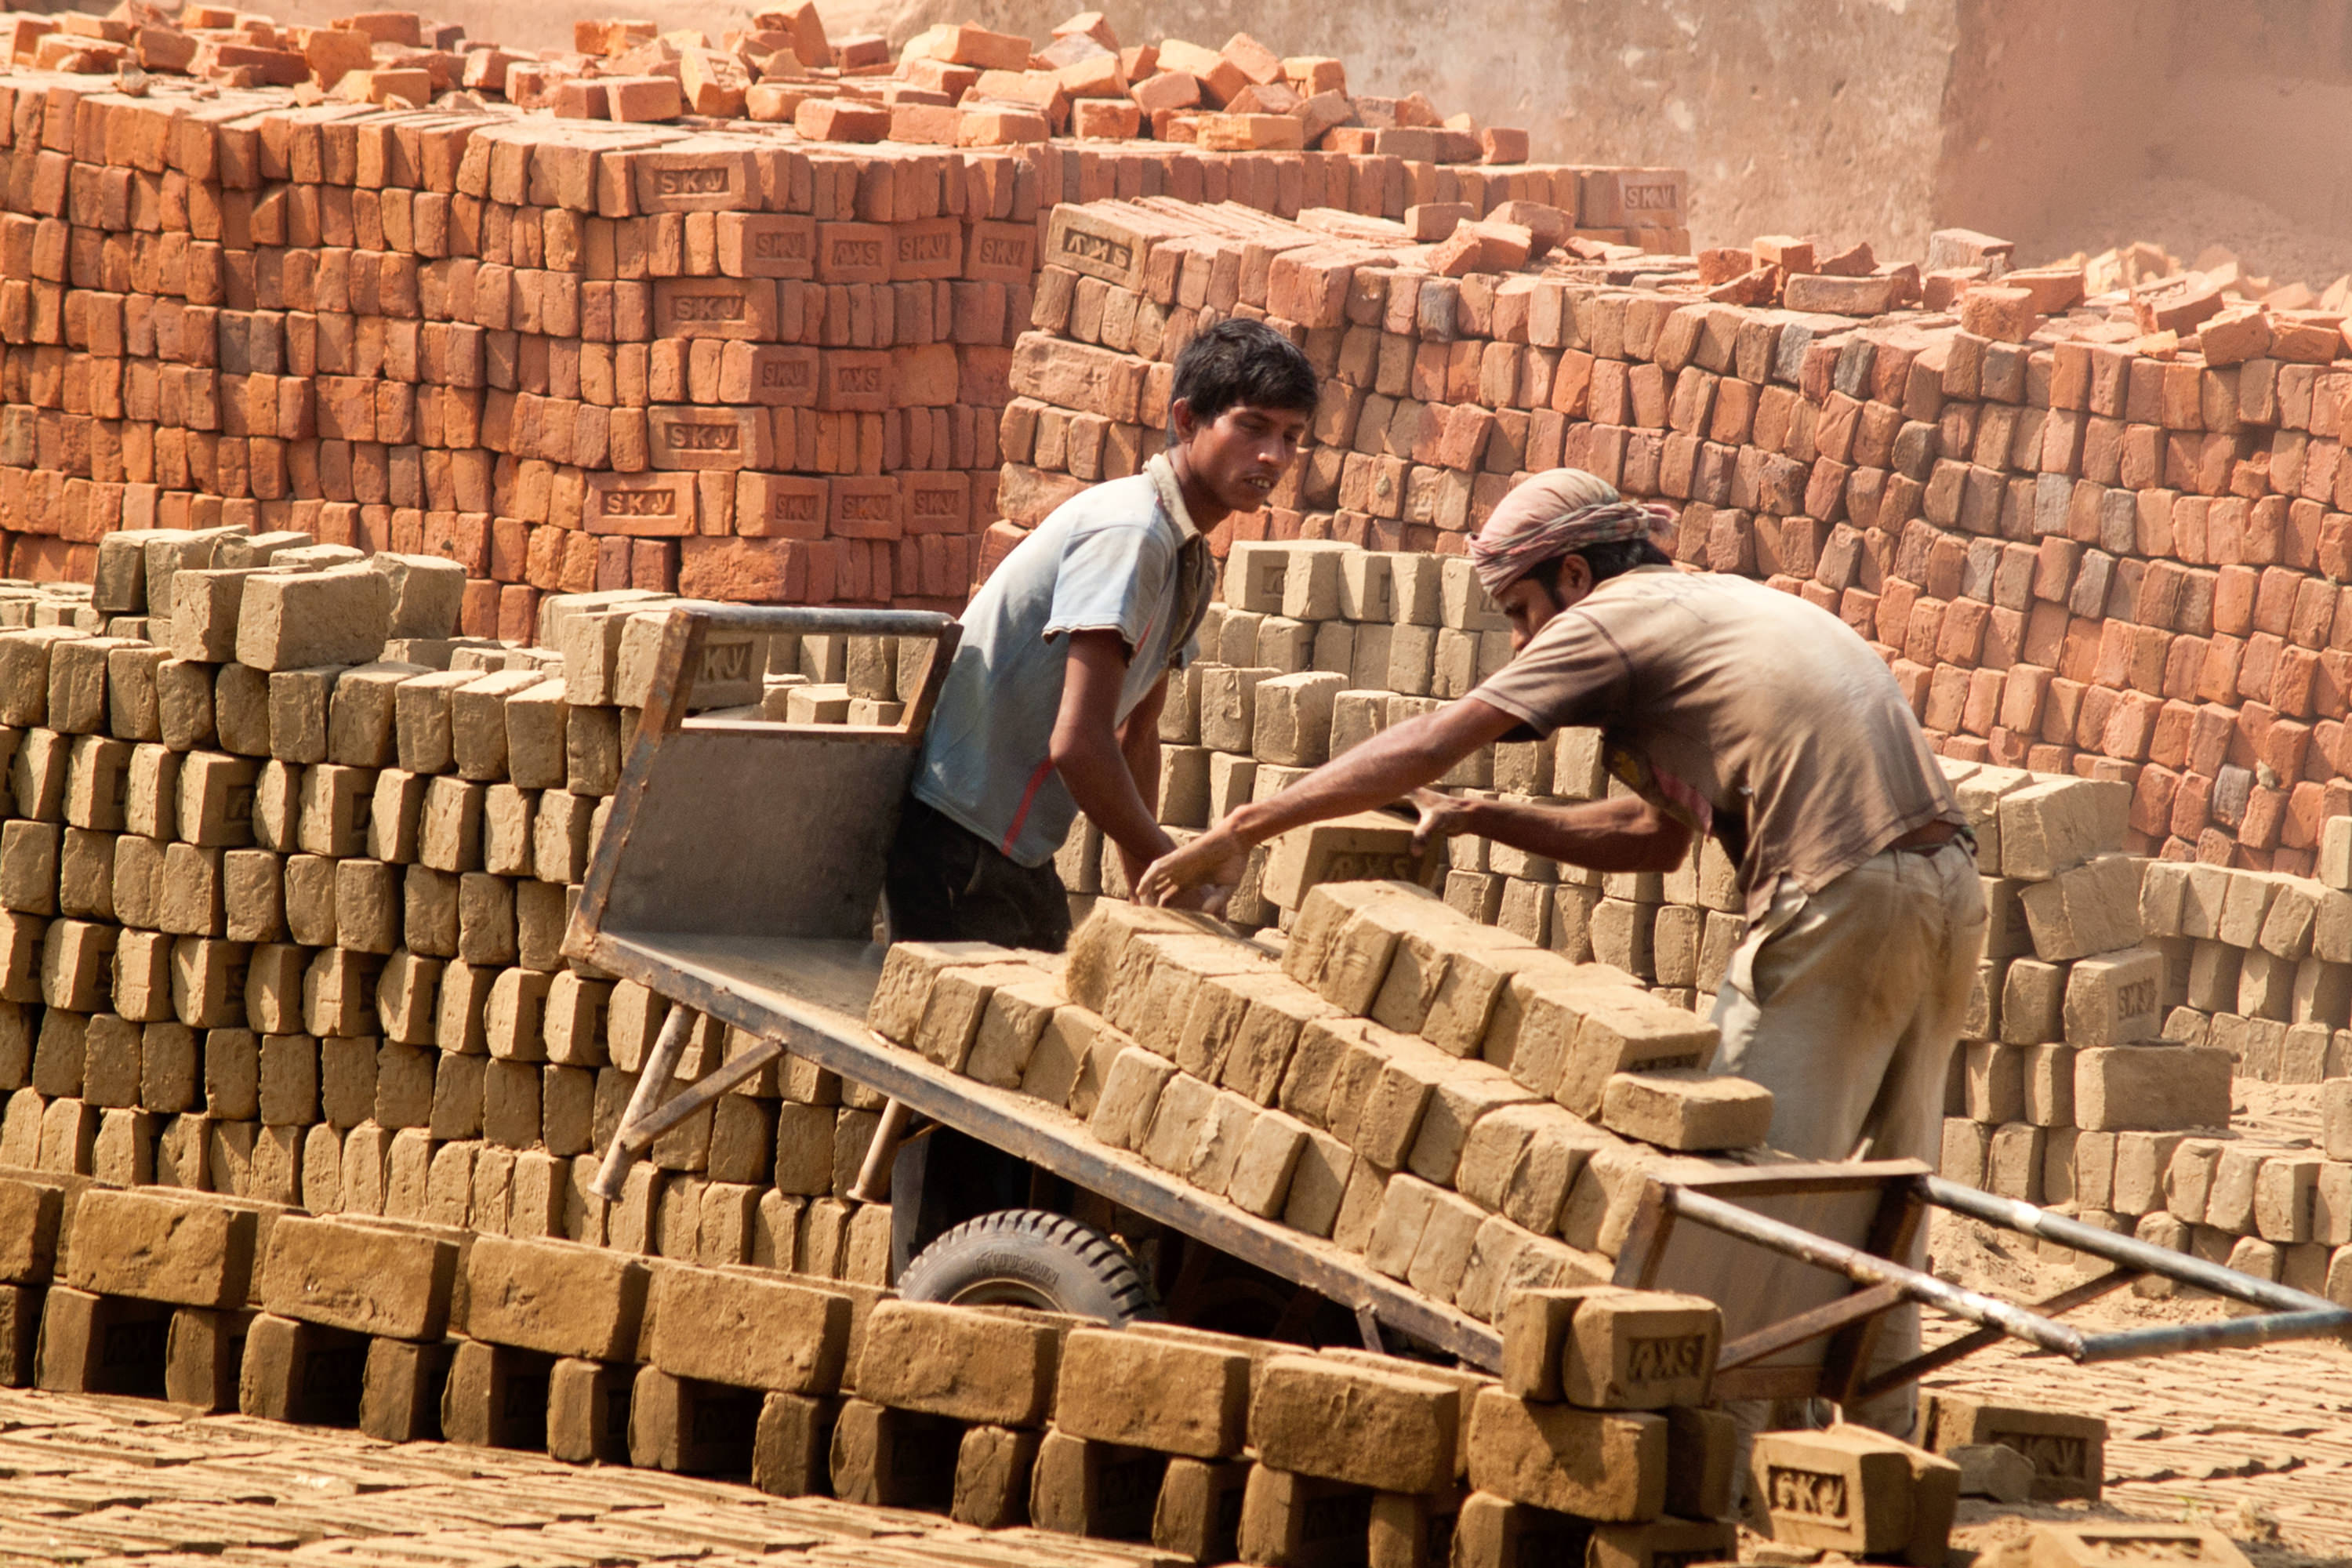 The Formal-Informal Labour Nexus and Growth